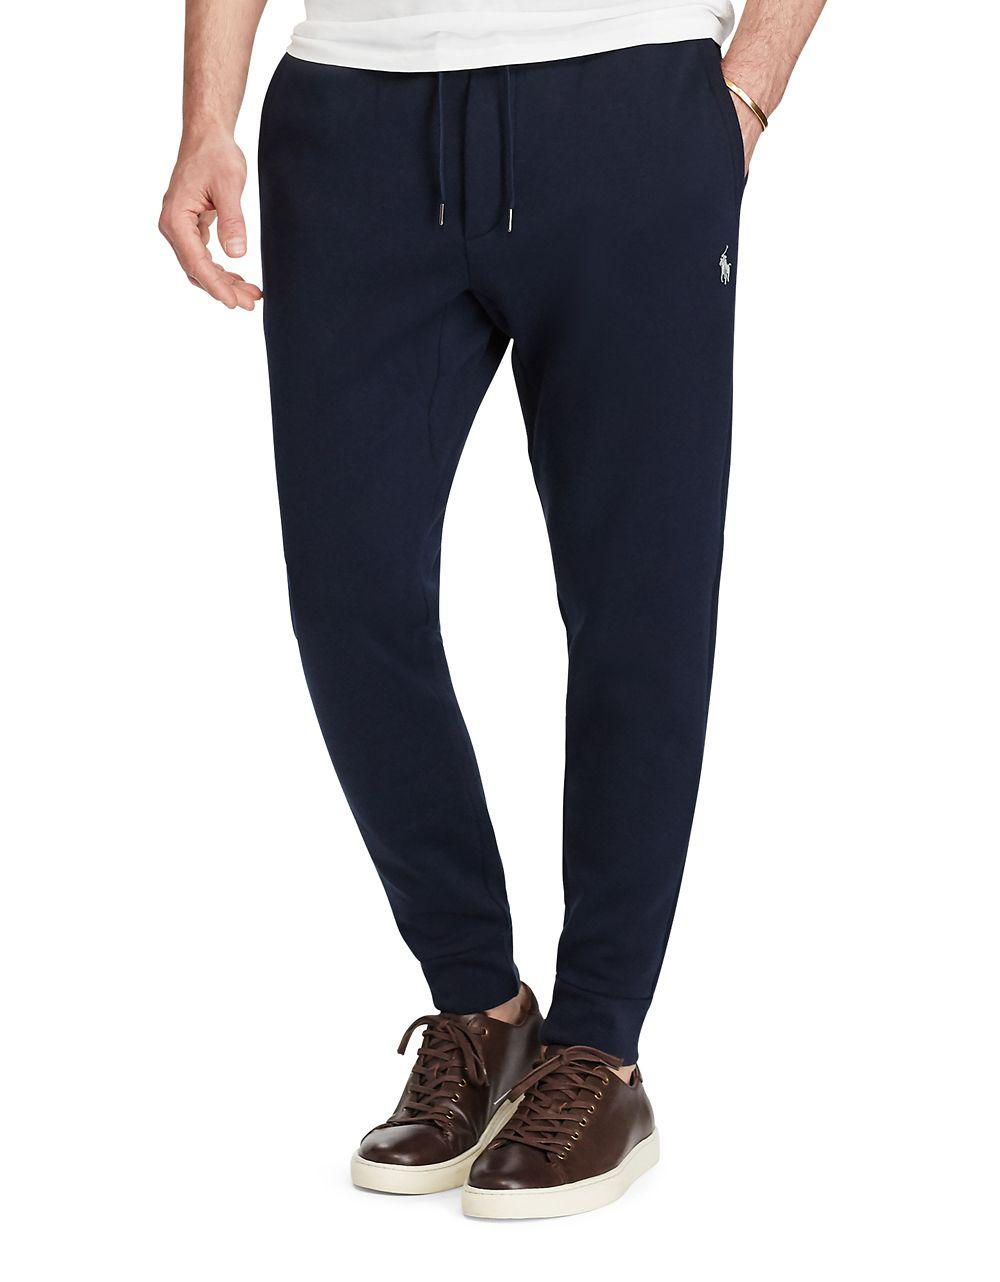 aabeff214e3b Lyst - Polo Ralph Lauren Tech-fleece Double-knit Jogger Pants in ...